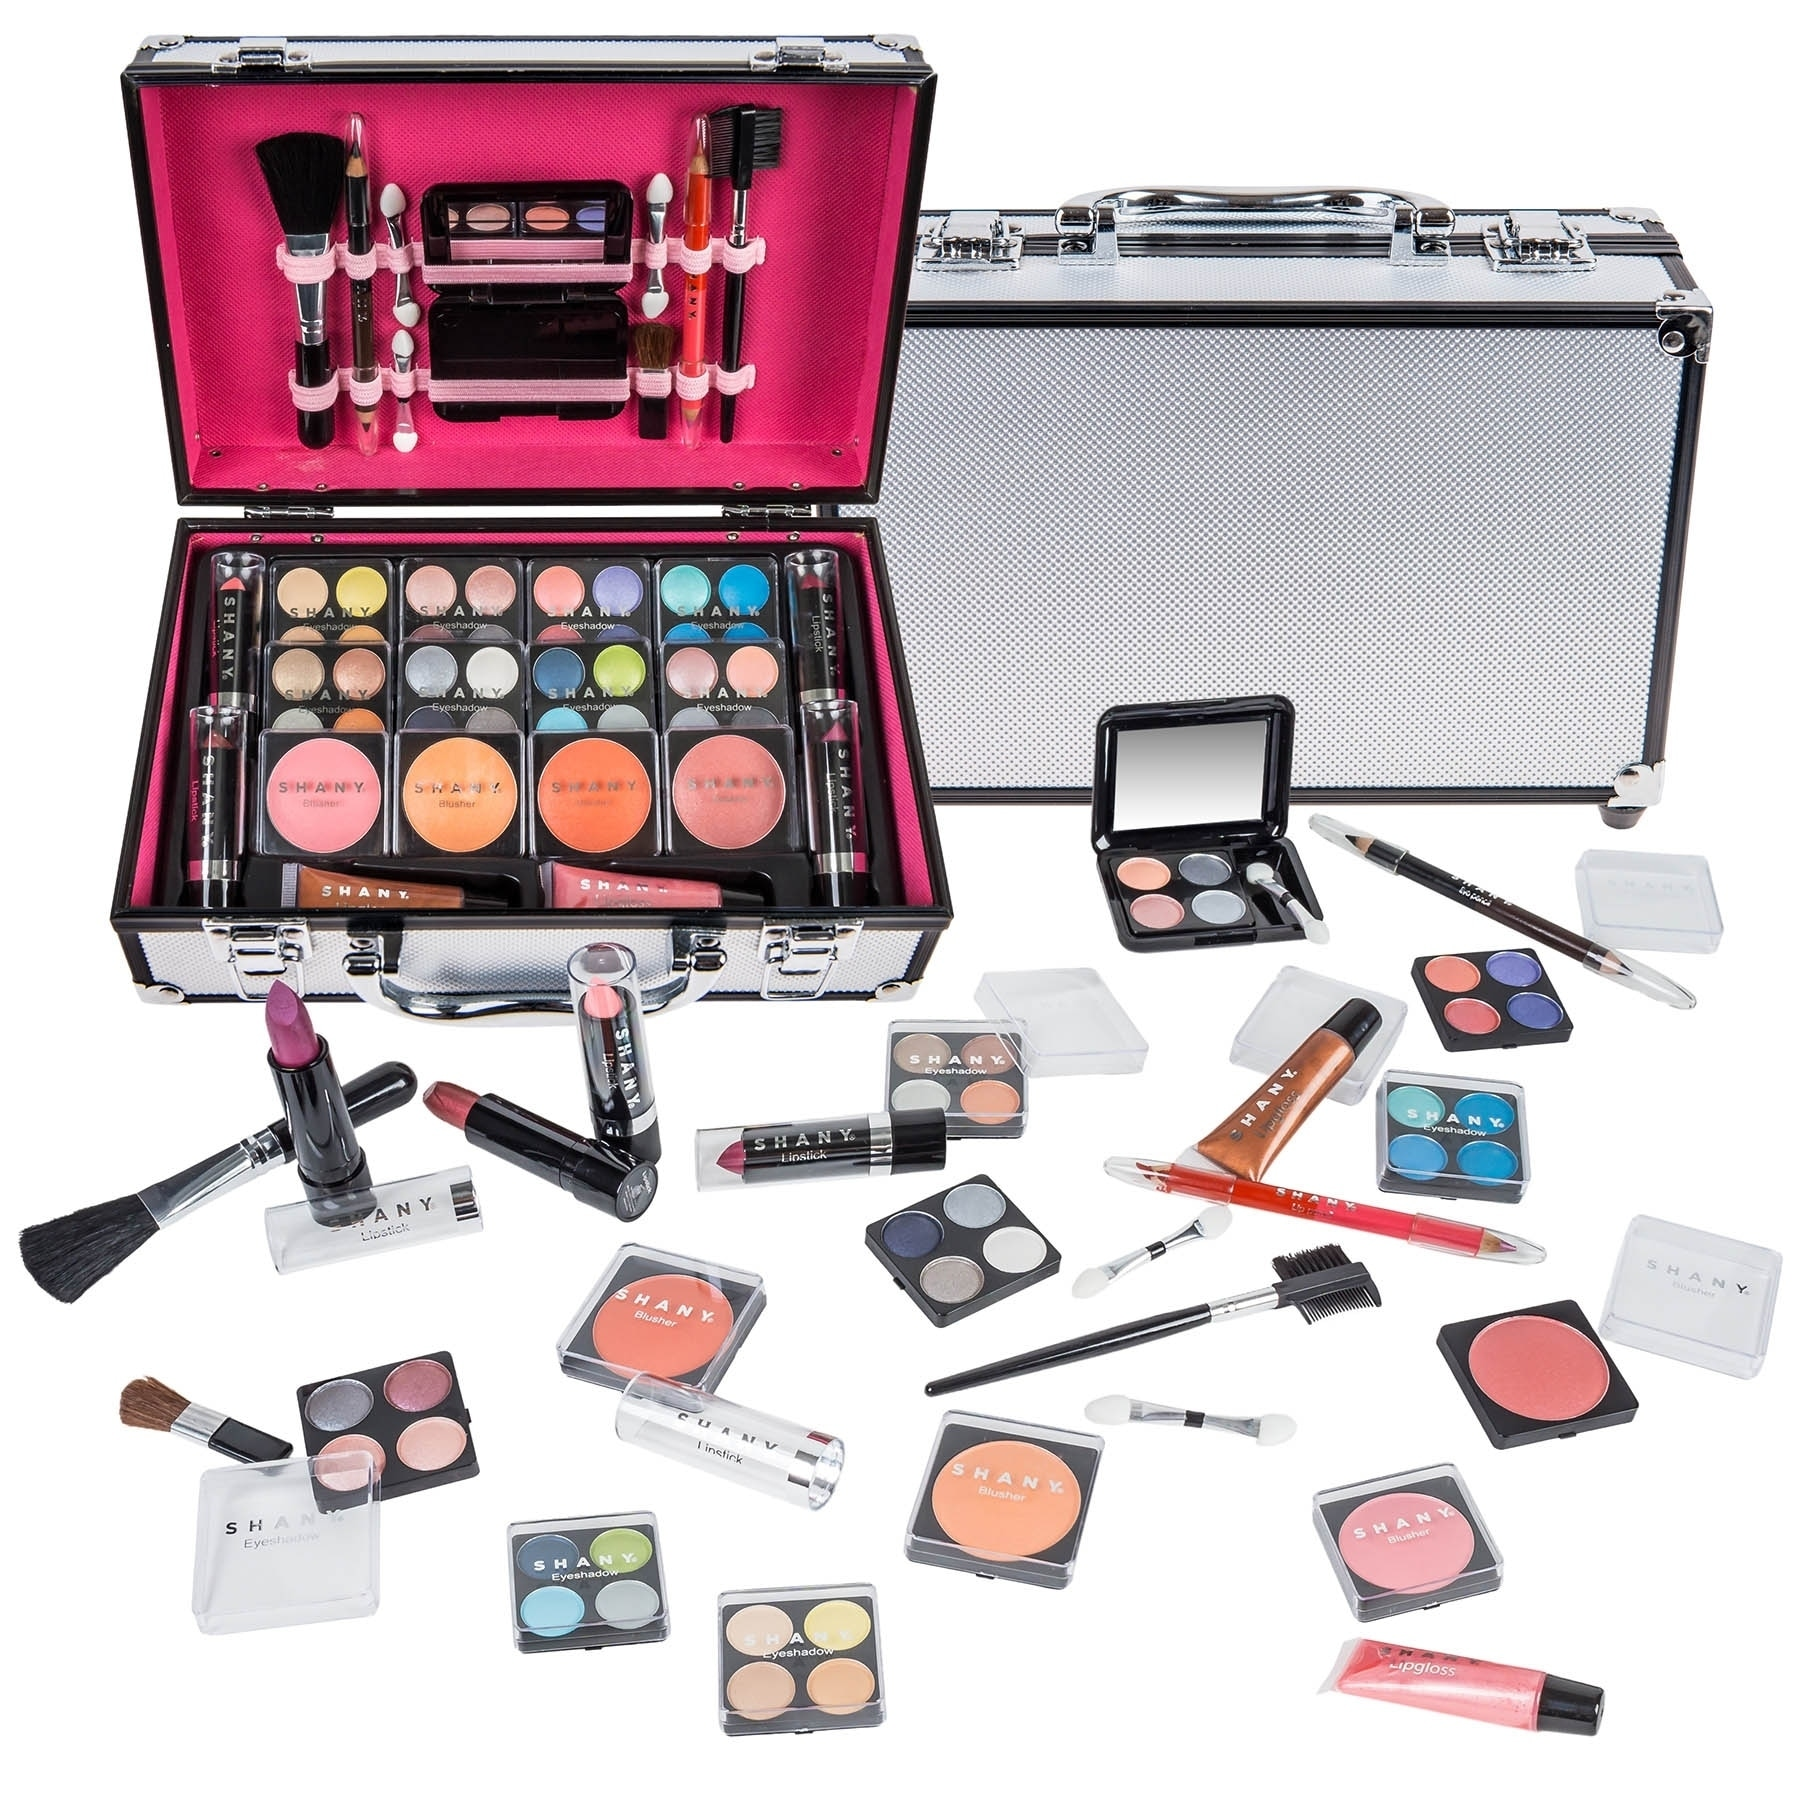 Shany Carry-all Makeup Train Case with Pro Makeup and Reu...